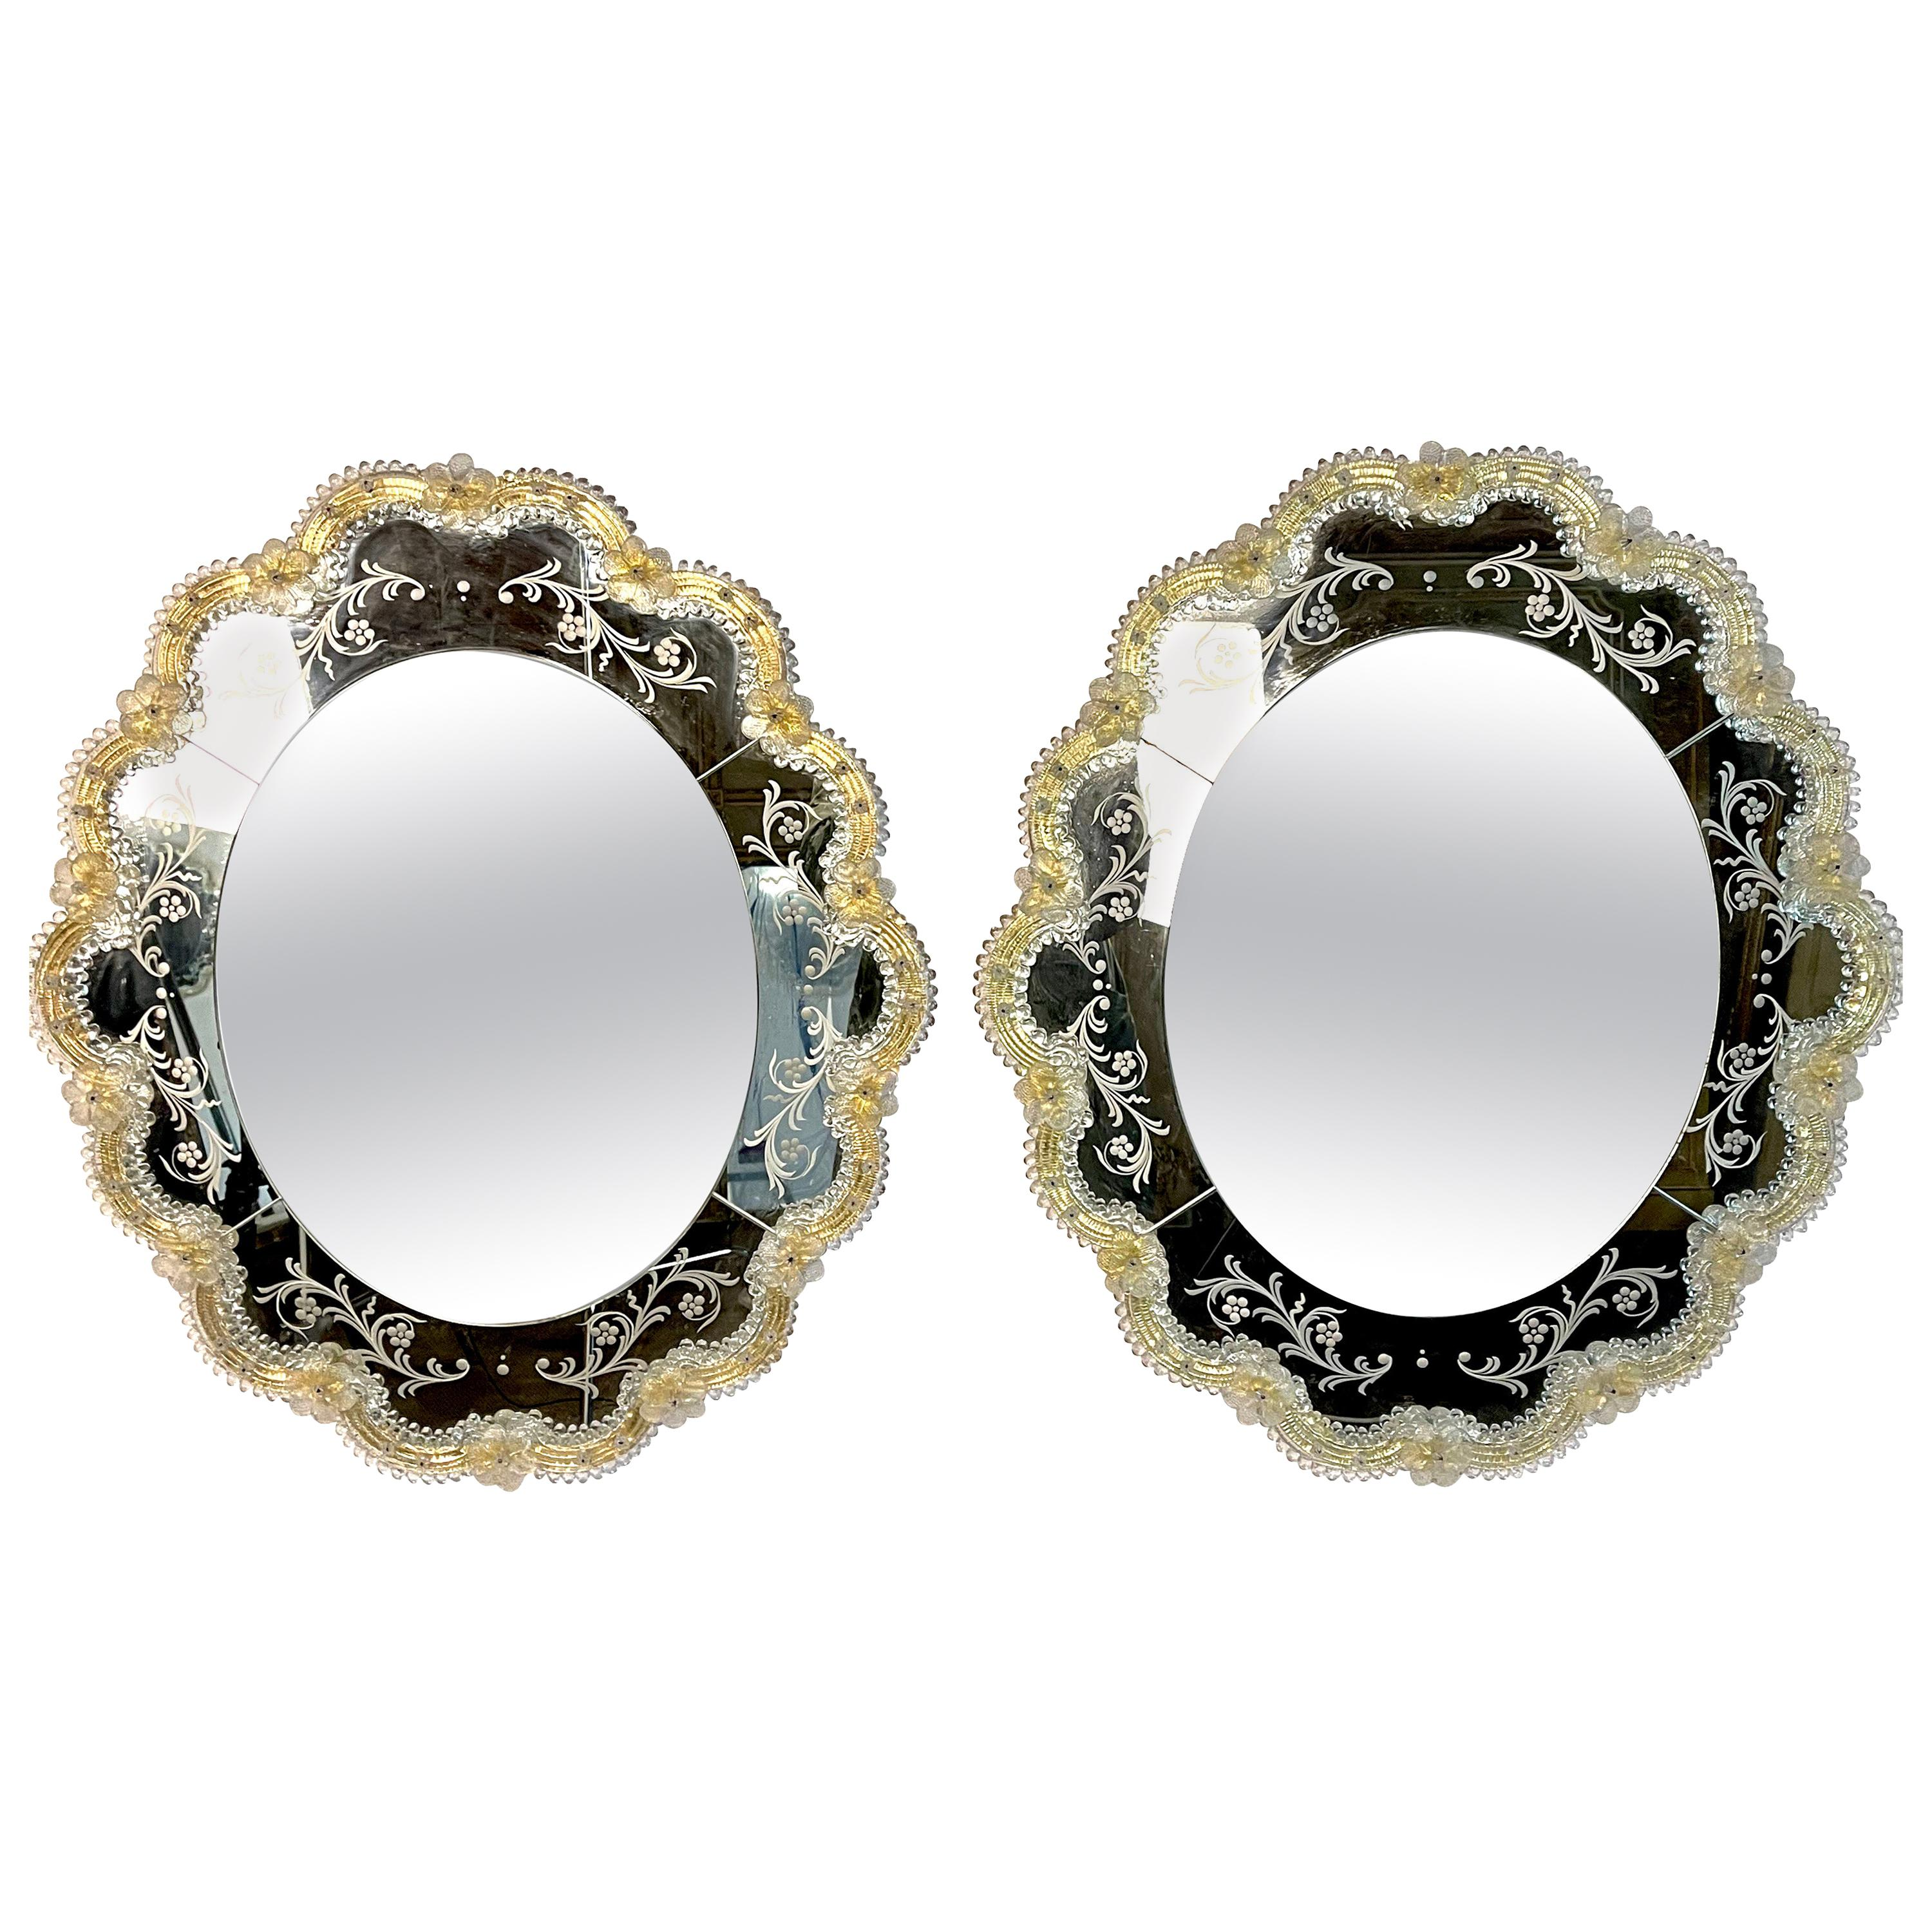 Pair of Murano Glass Oval Mirrors with Gold Glass Accents